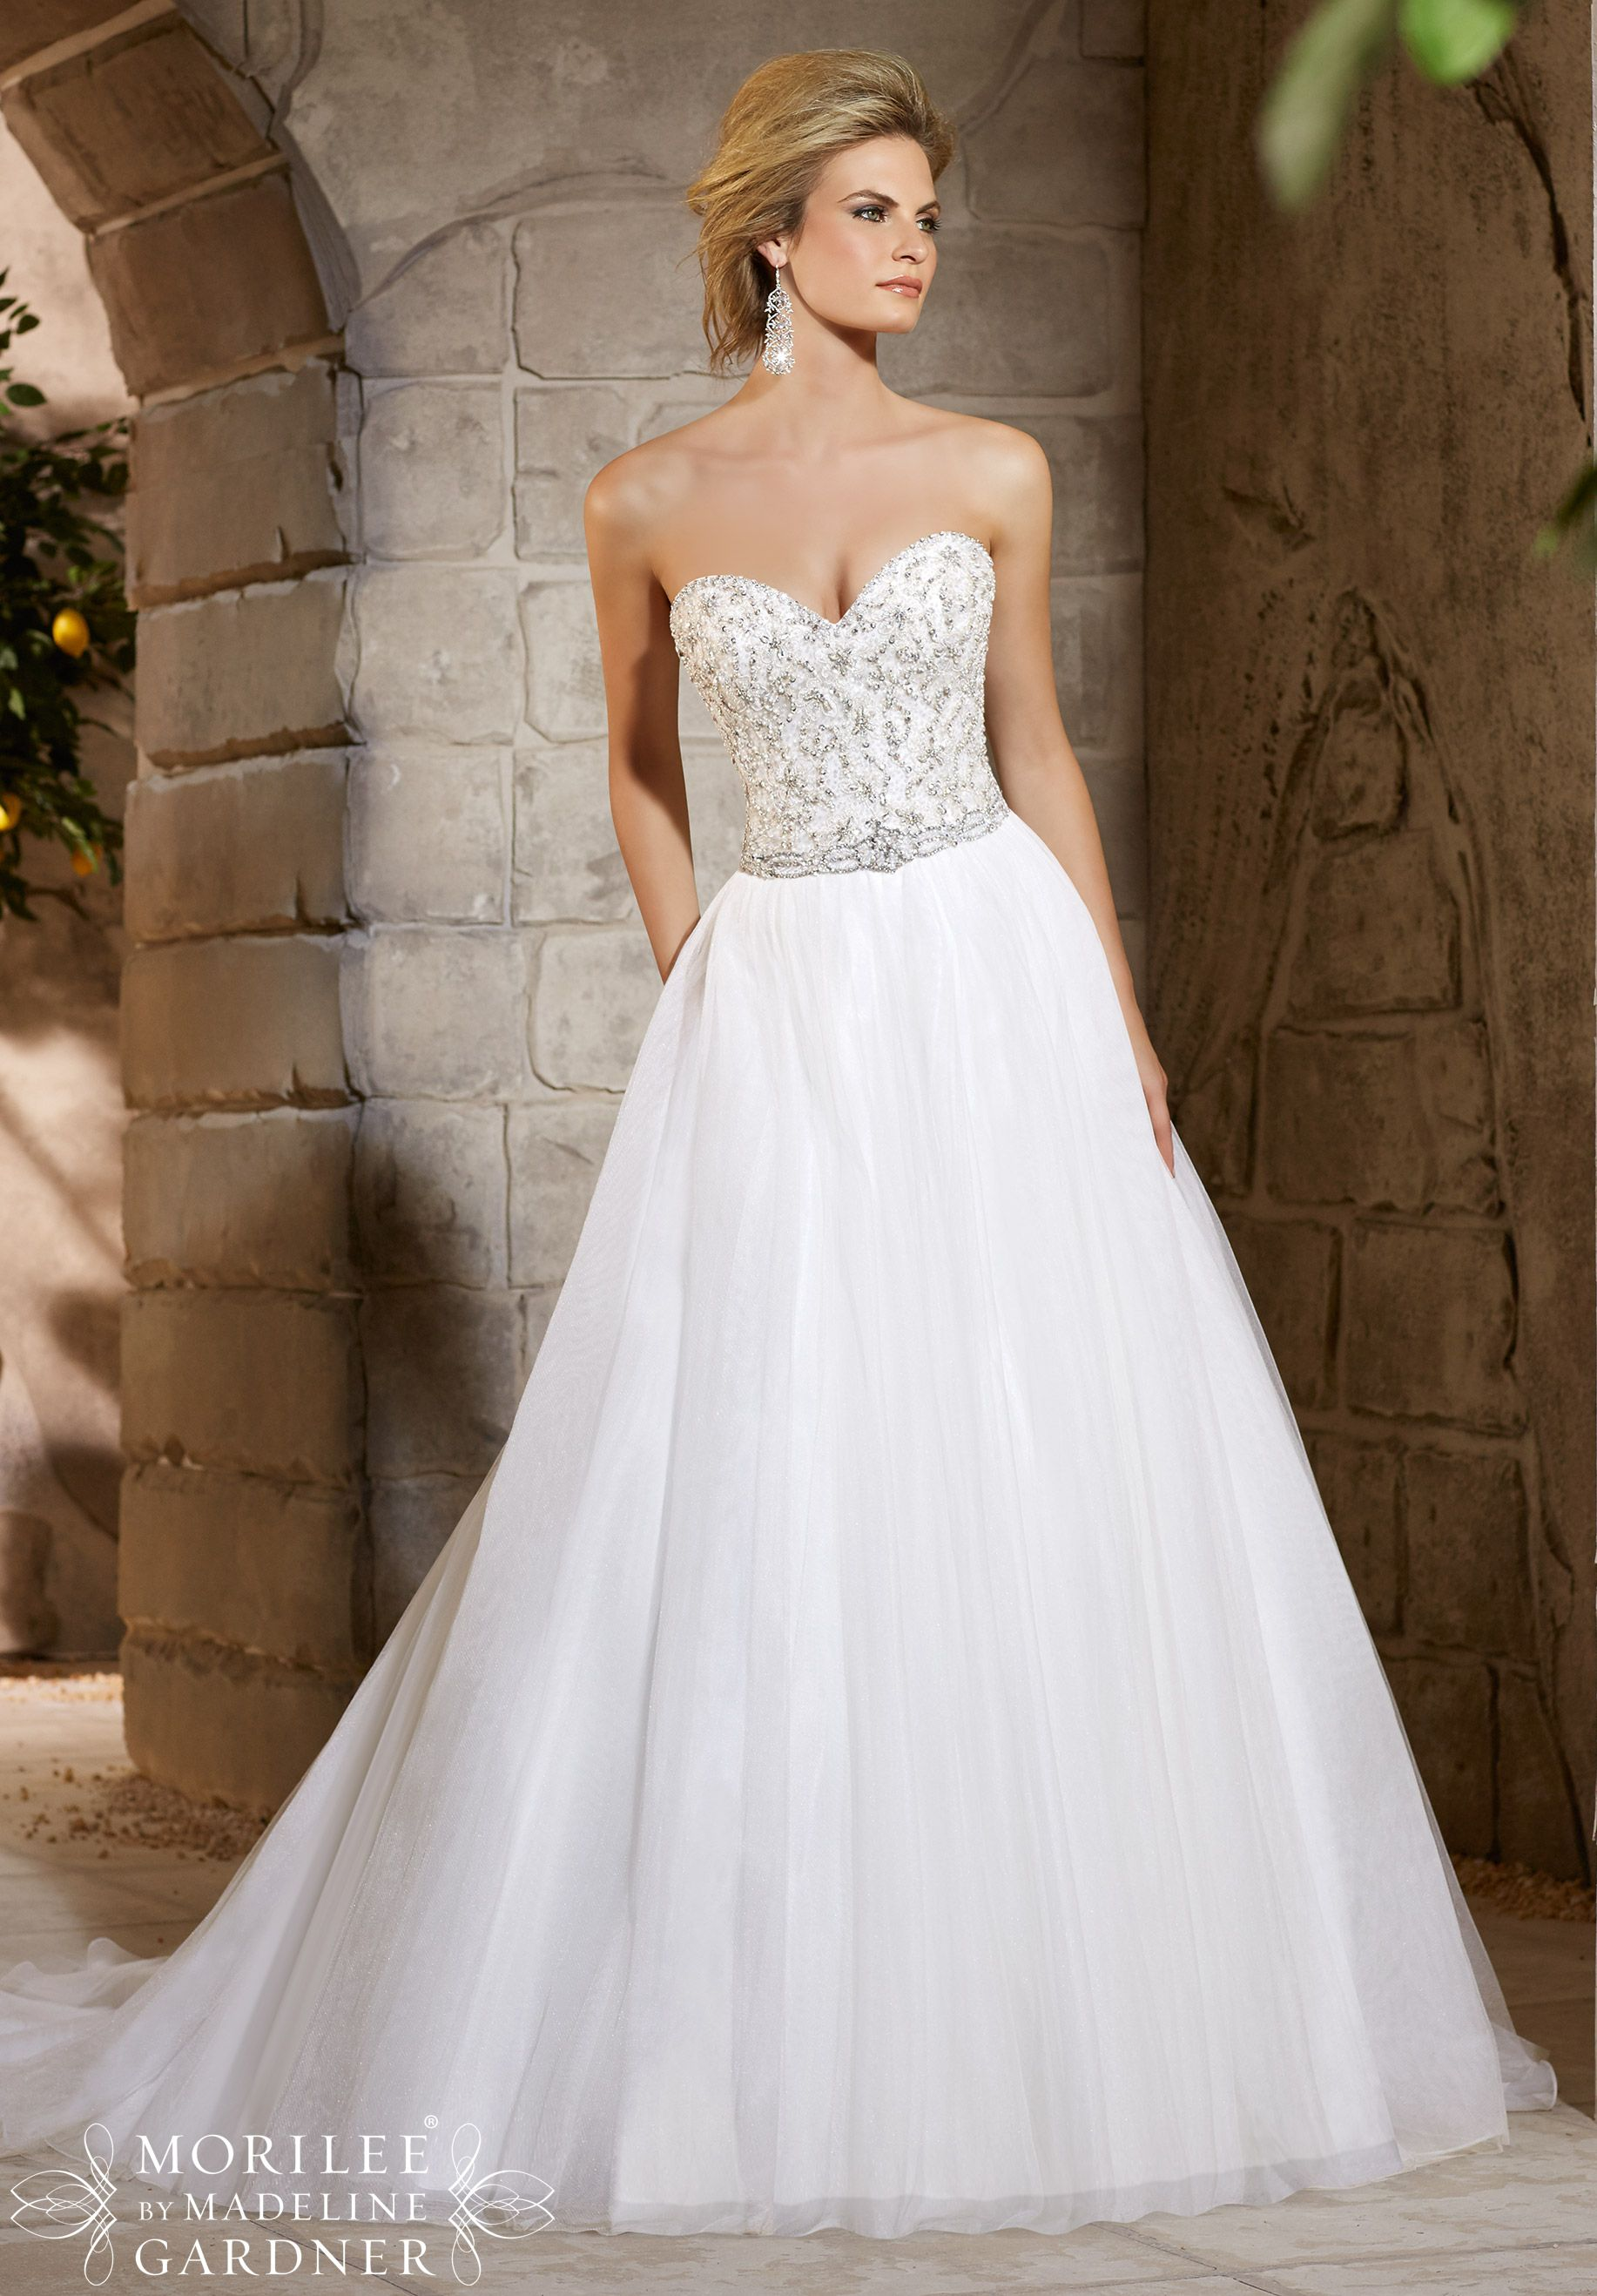 Mori lee strapless lace-up back wedding dress